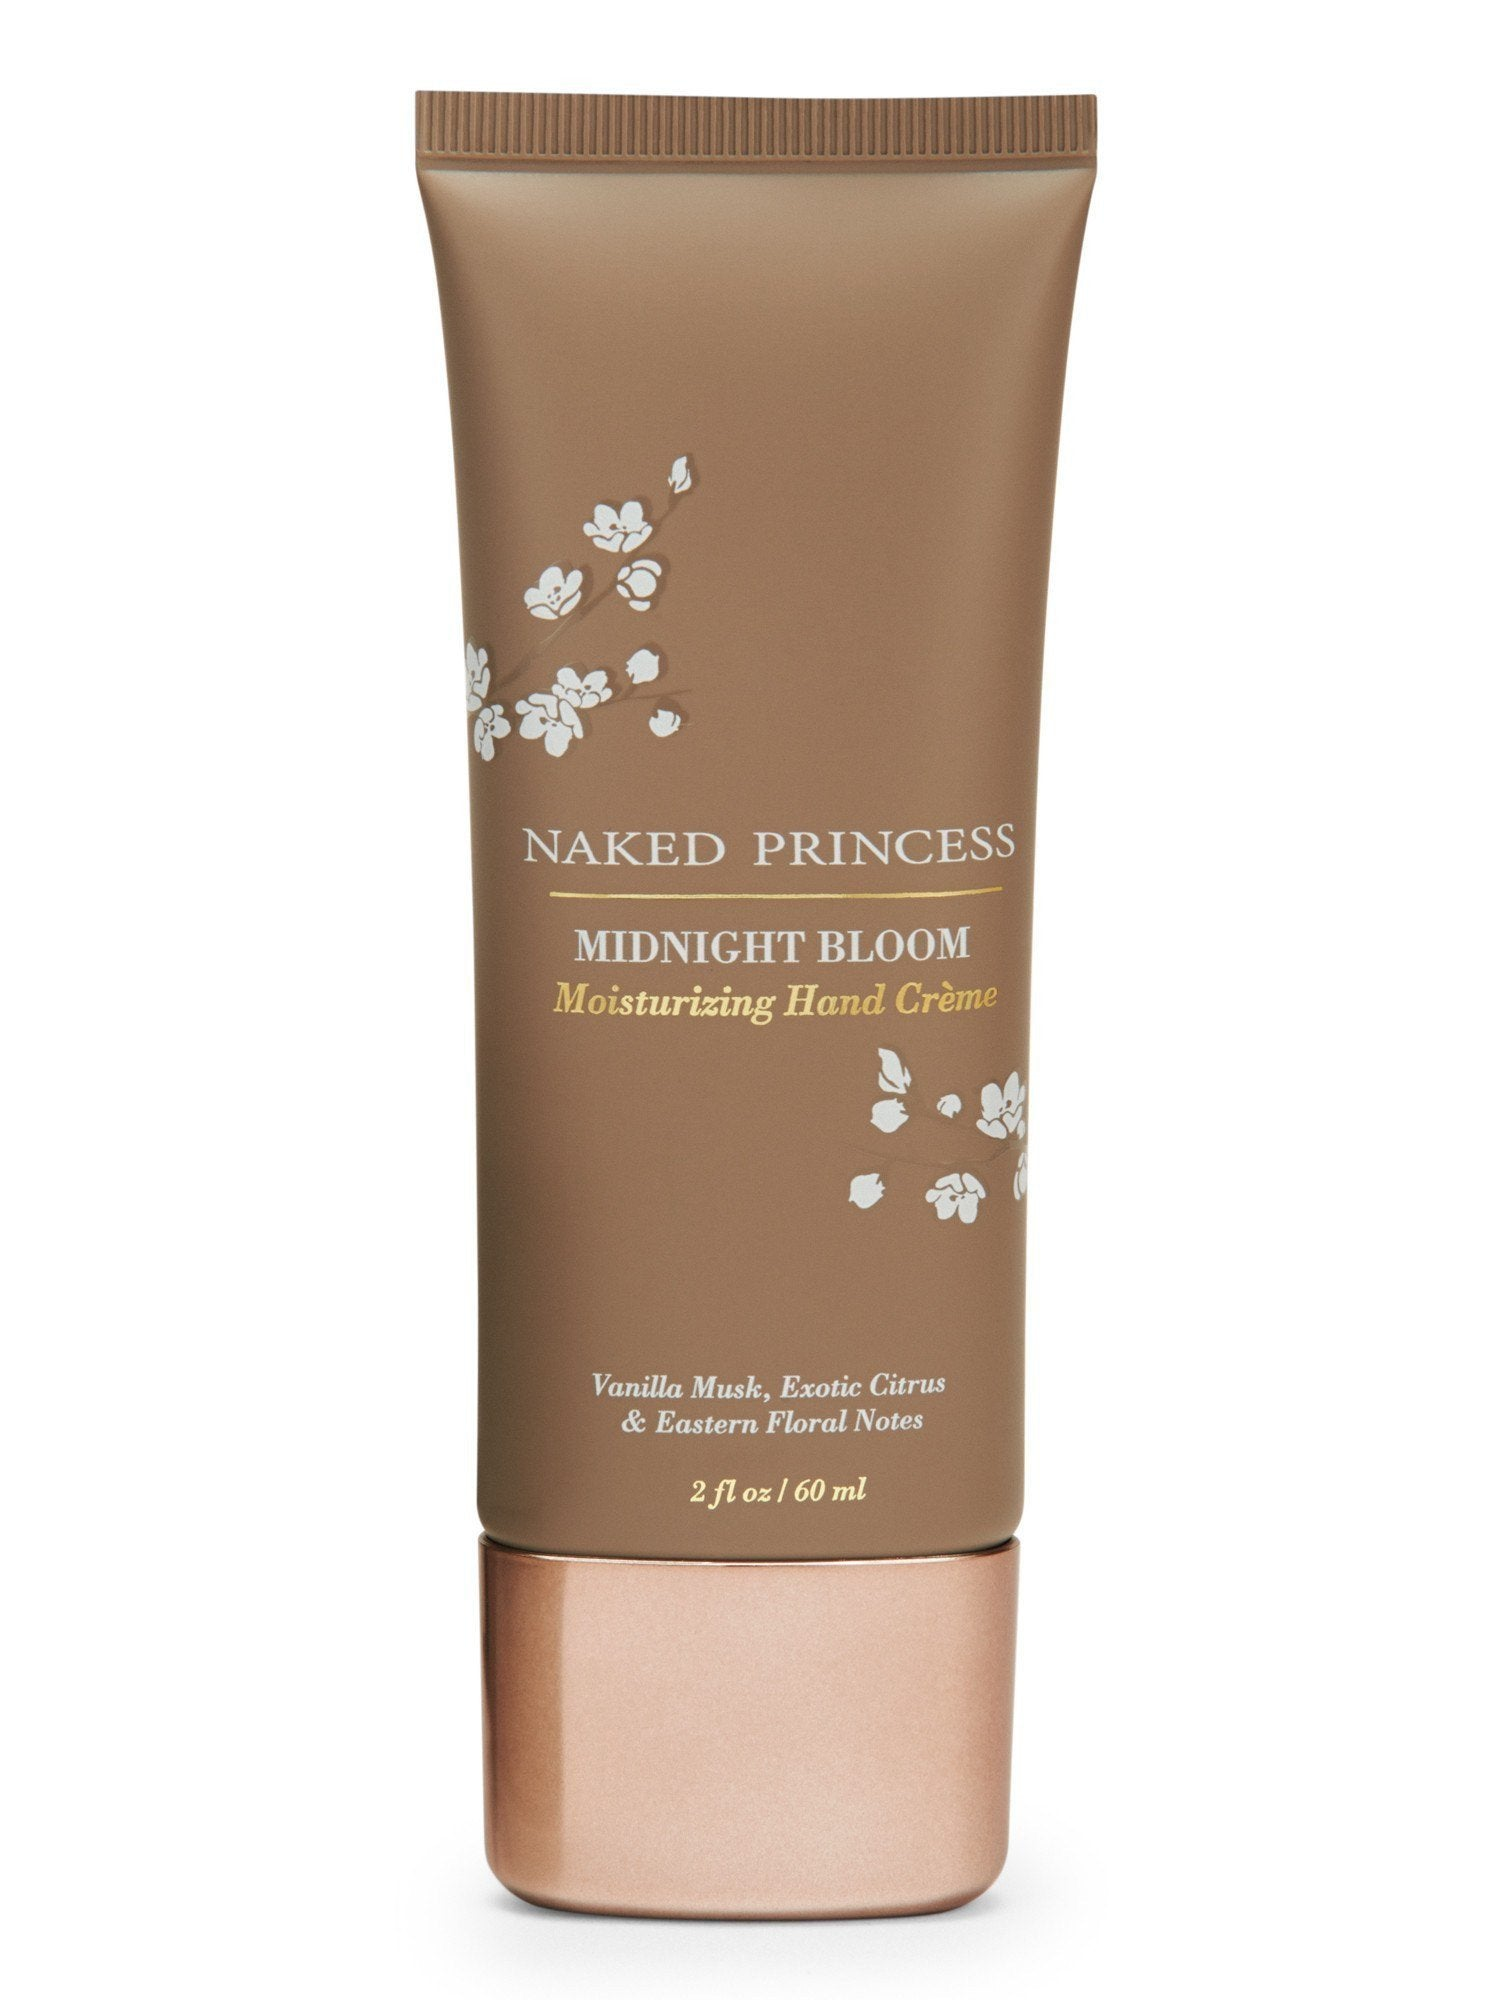 Hand Crème - Midnight Bloom Moisturize by Le Marché by NP